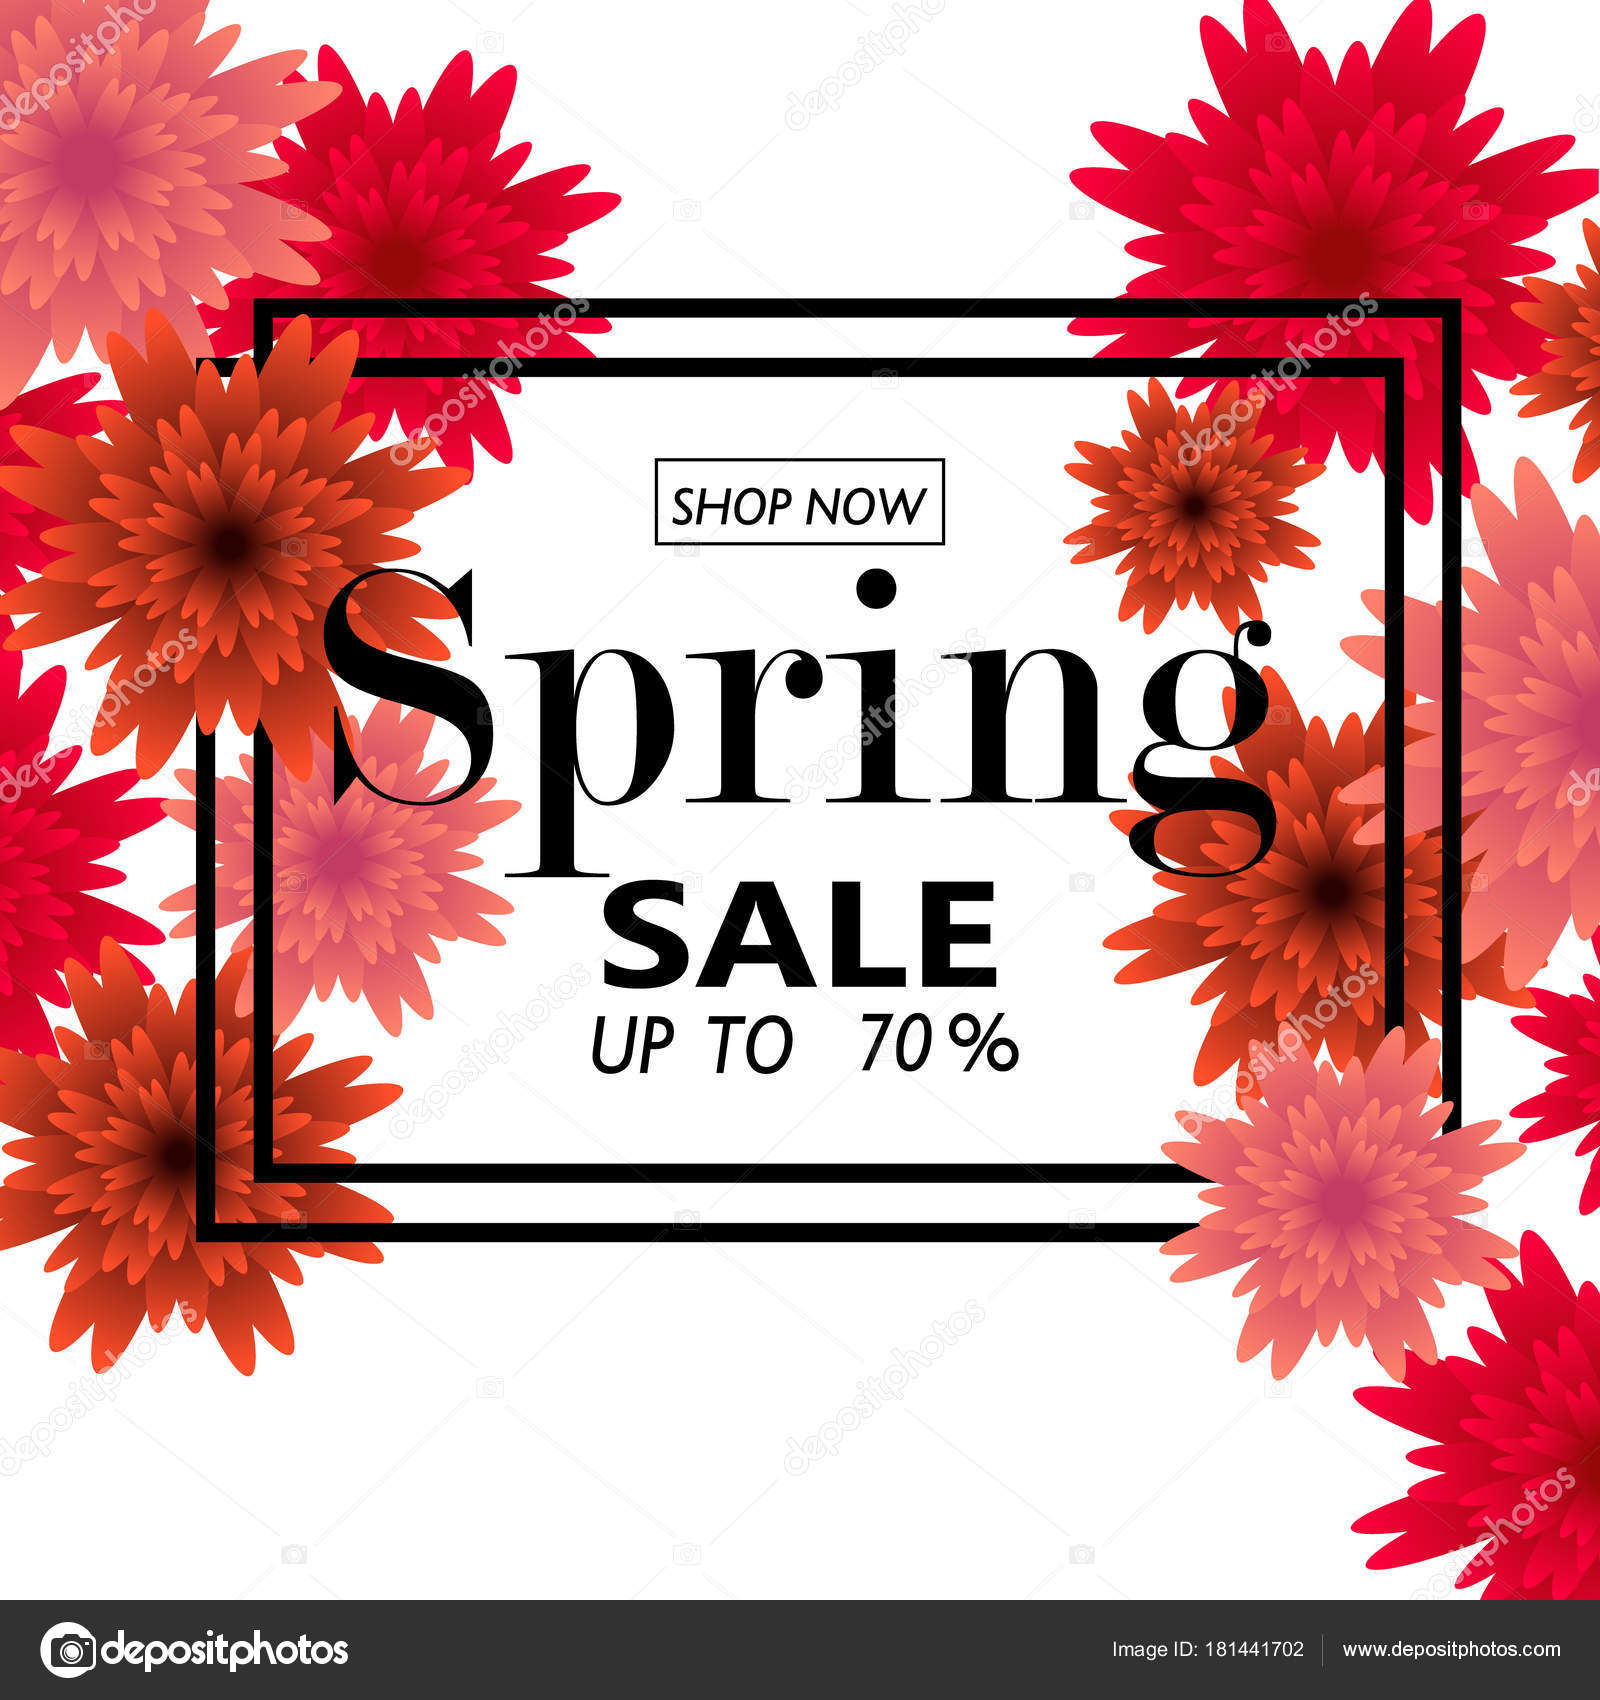 Spring sale banner with paper flowers for online shopping spring sale banner with paper flowers for online shopping advertising actions magazines and websites mightylinksfo